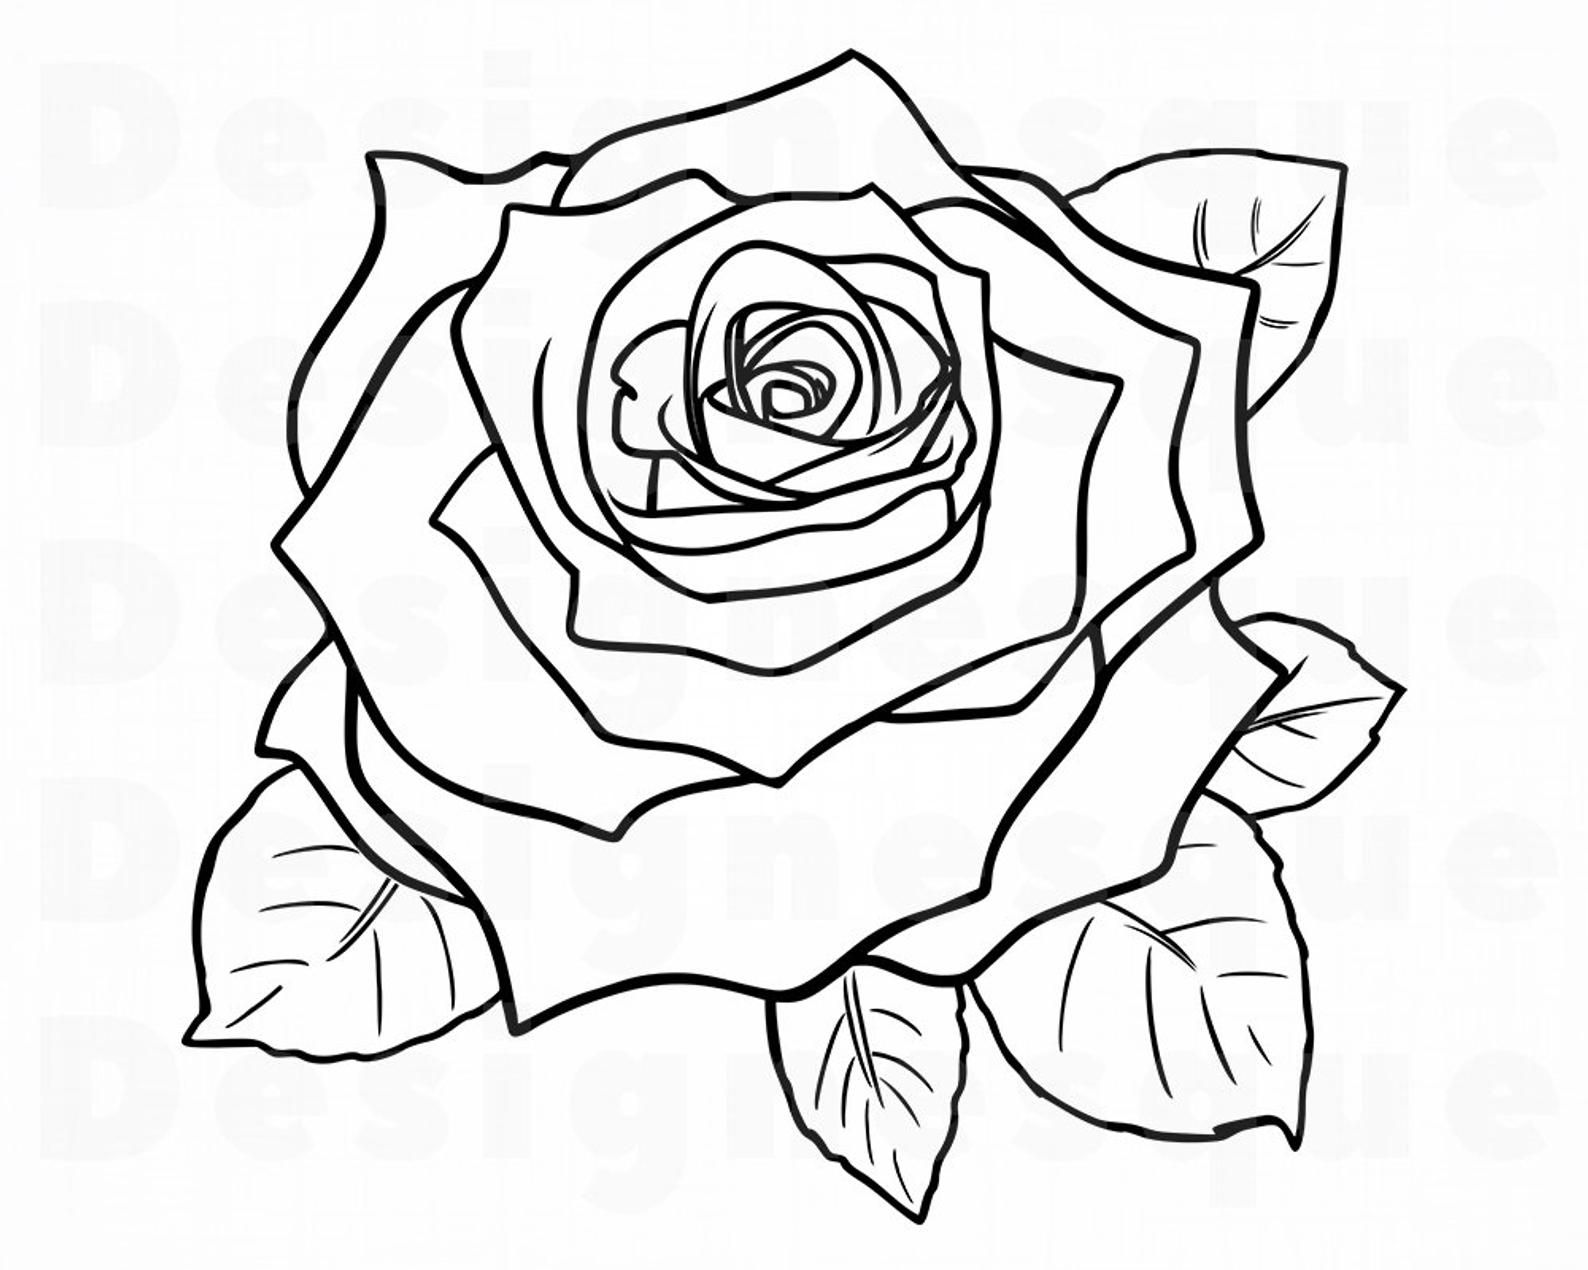 Rose Outline Svg Flower Outline Svg Rose Outline Clipart Etsy In 2020 Rose Outline Tattoo Rose Outline Tattoo Outline Drawing